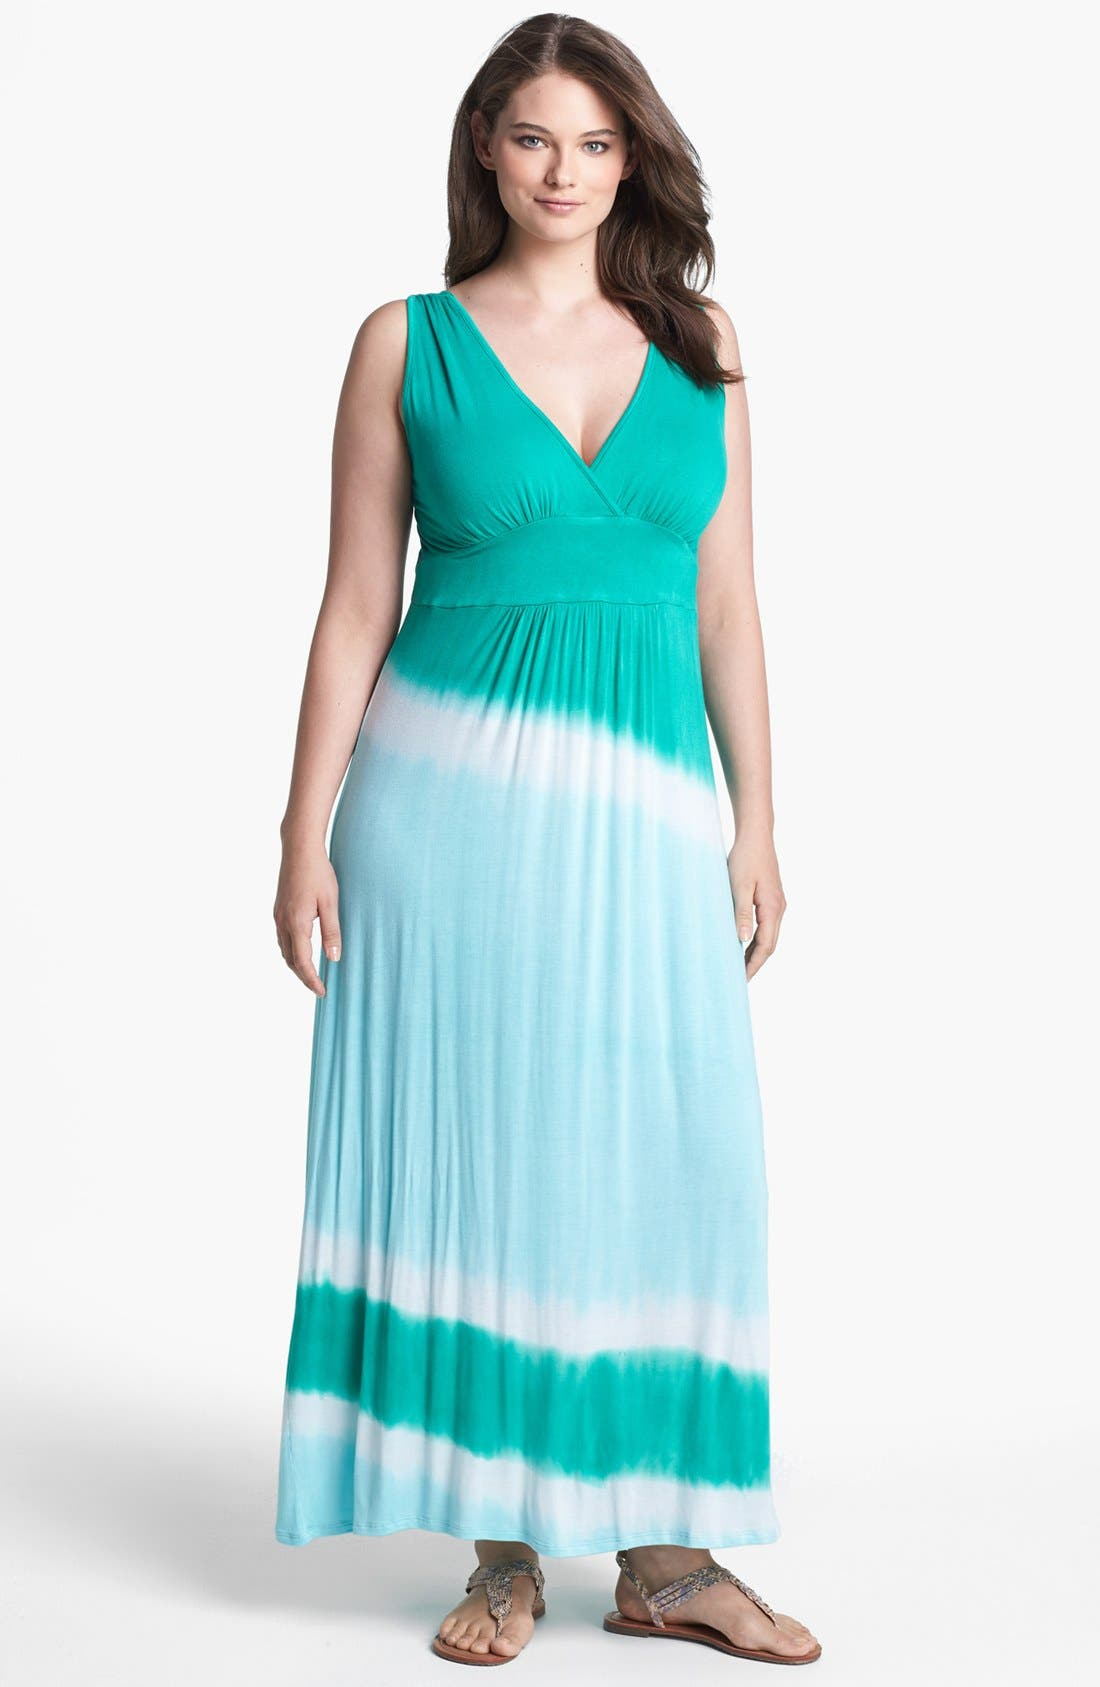 Main Image - Loveappella Tie Dye Jersey Maxi Dress (Plus Size)